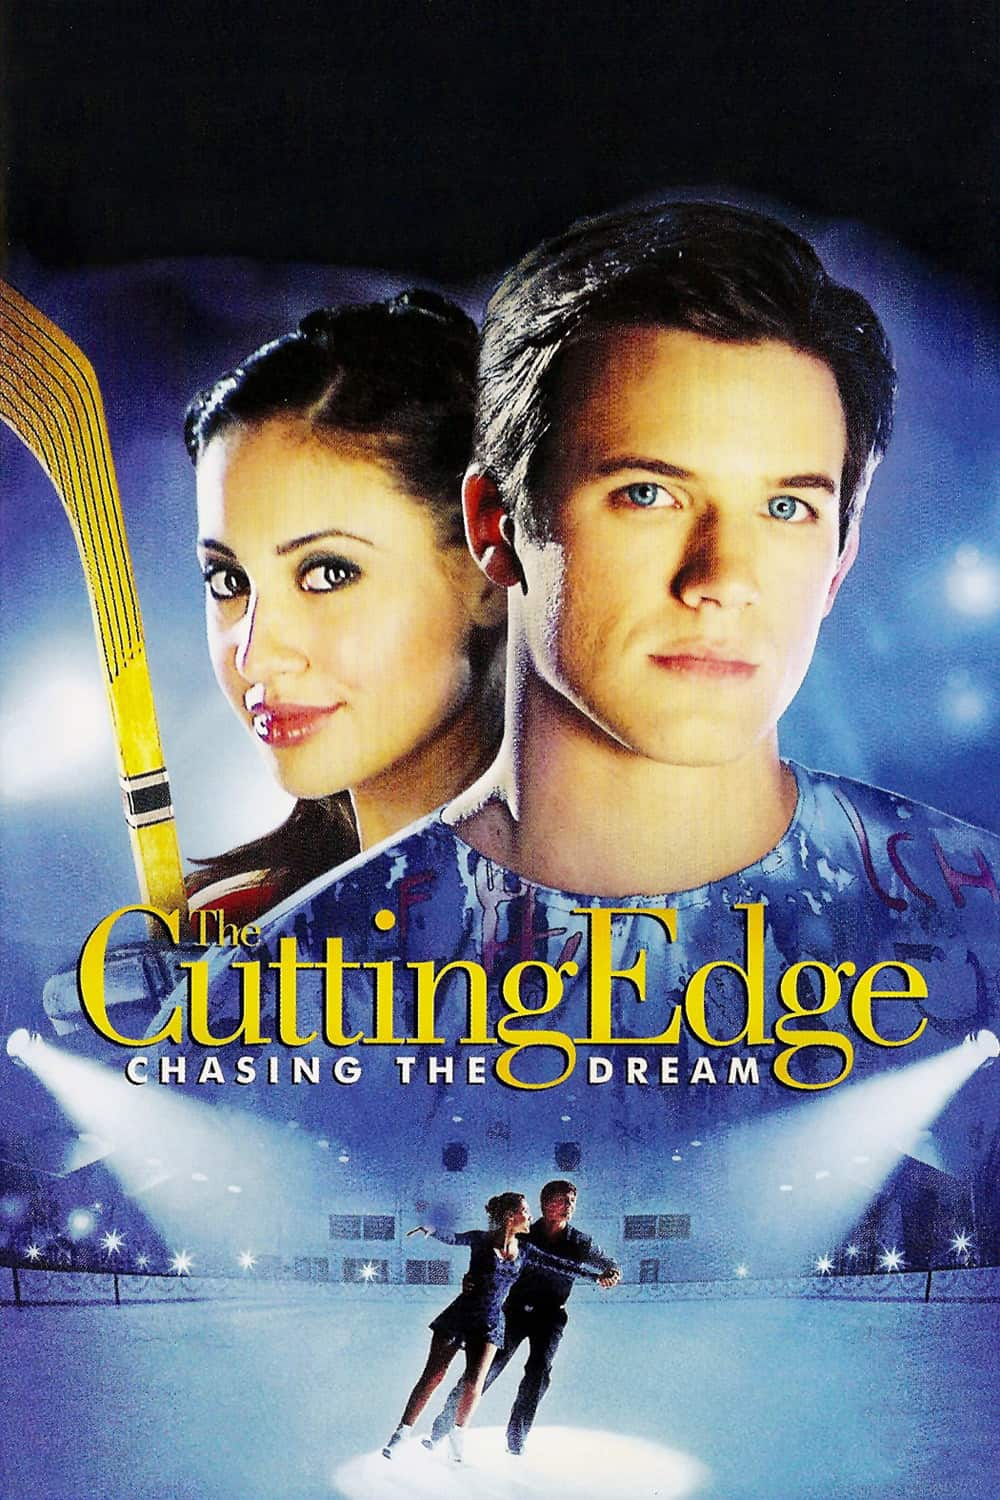 The Cutting Edge: Chasing the Dream, 2008